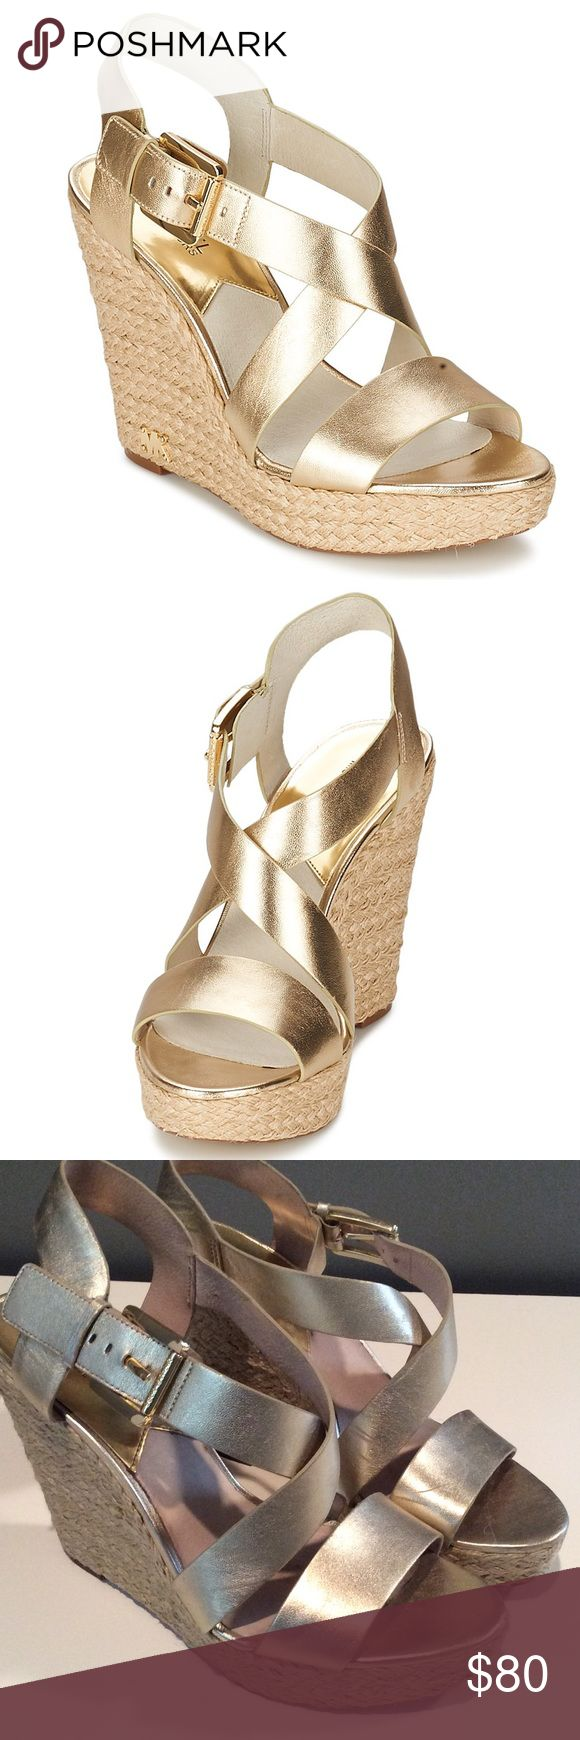 Michael Kors Gold Wedges Gently worn wedges. Very comfortable and great for the summer. Perfect for walking in the grass or on the beach! MICHAEL Michael Kors Shoes Wedges